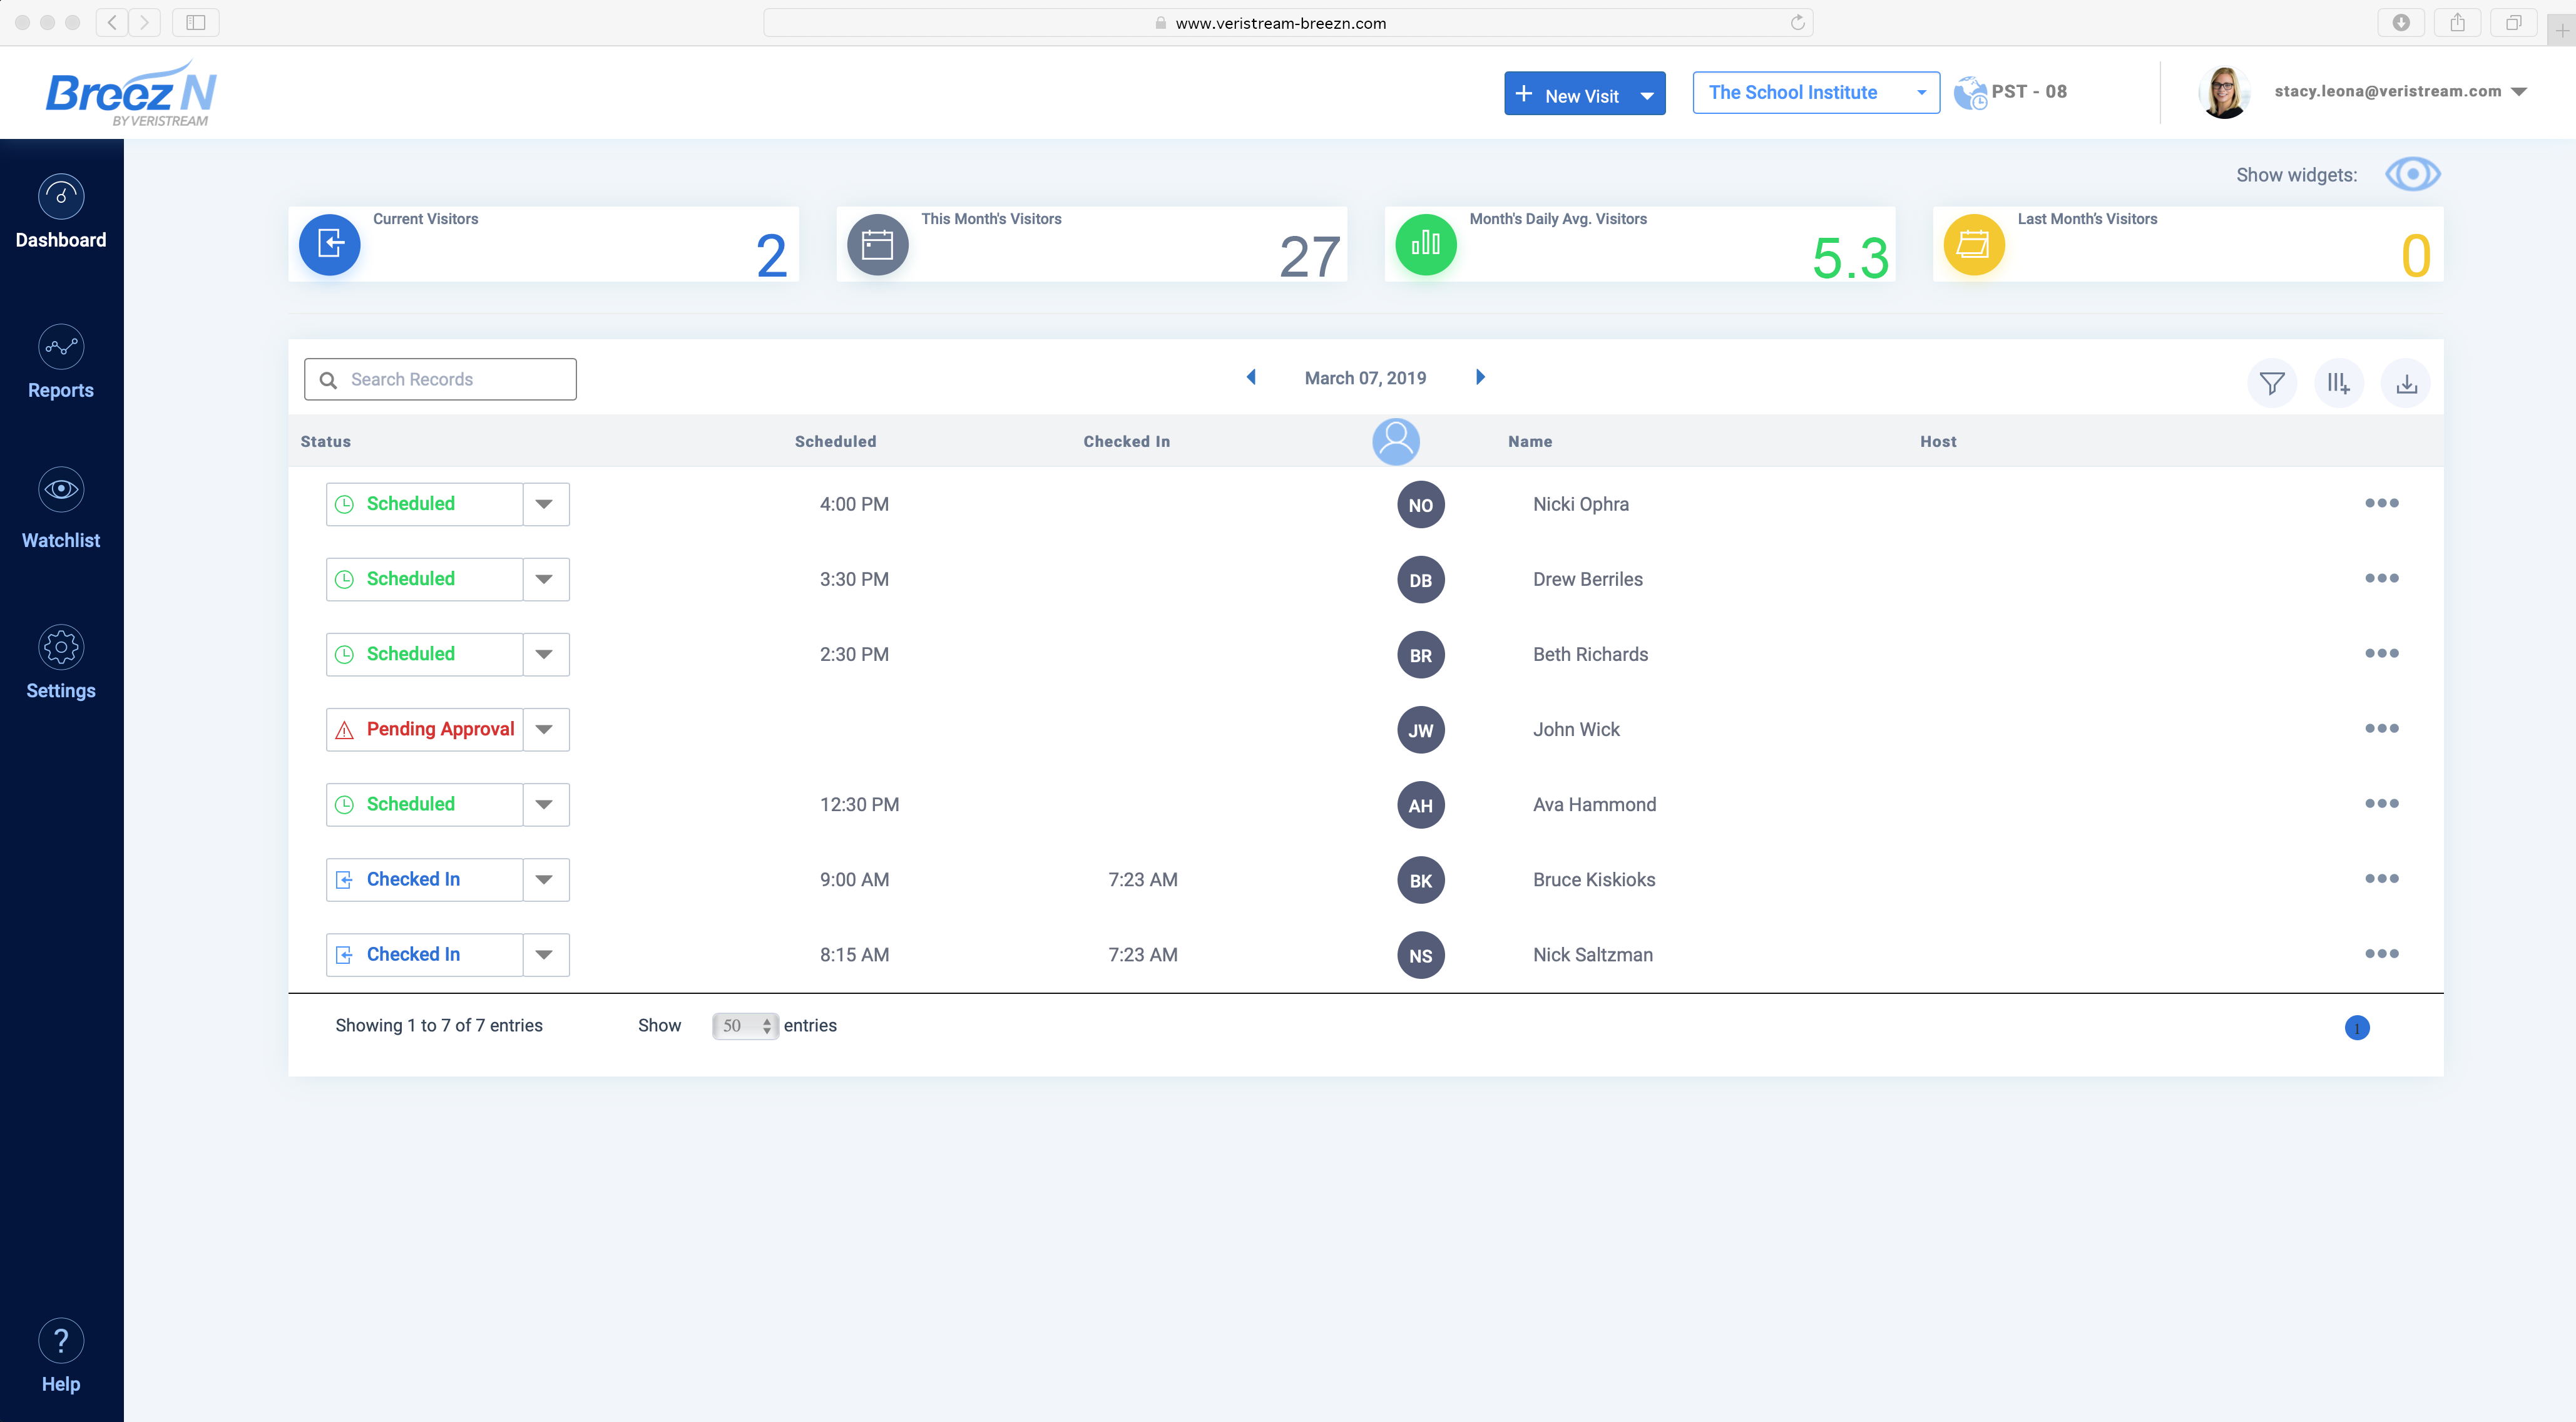 iVisitor Software - Dashboard